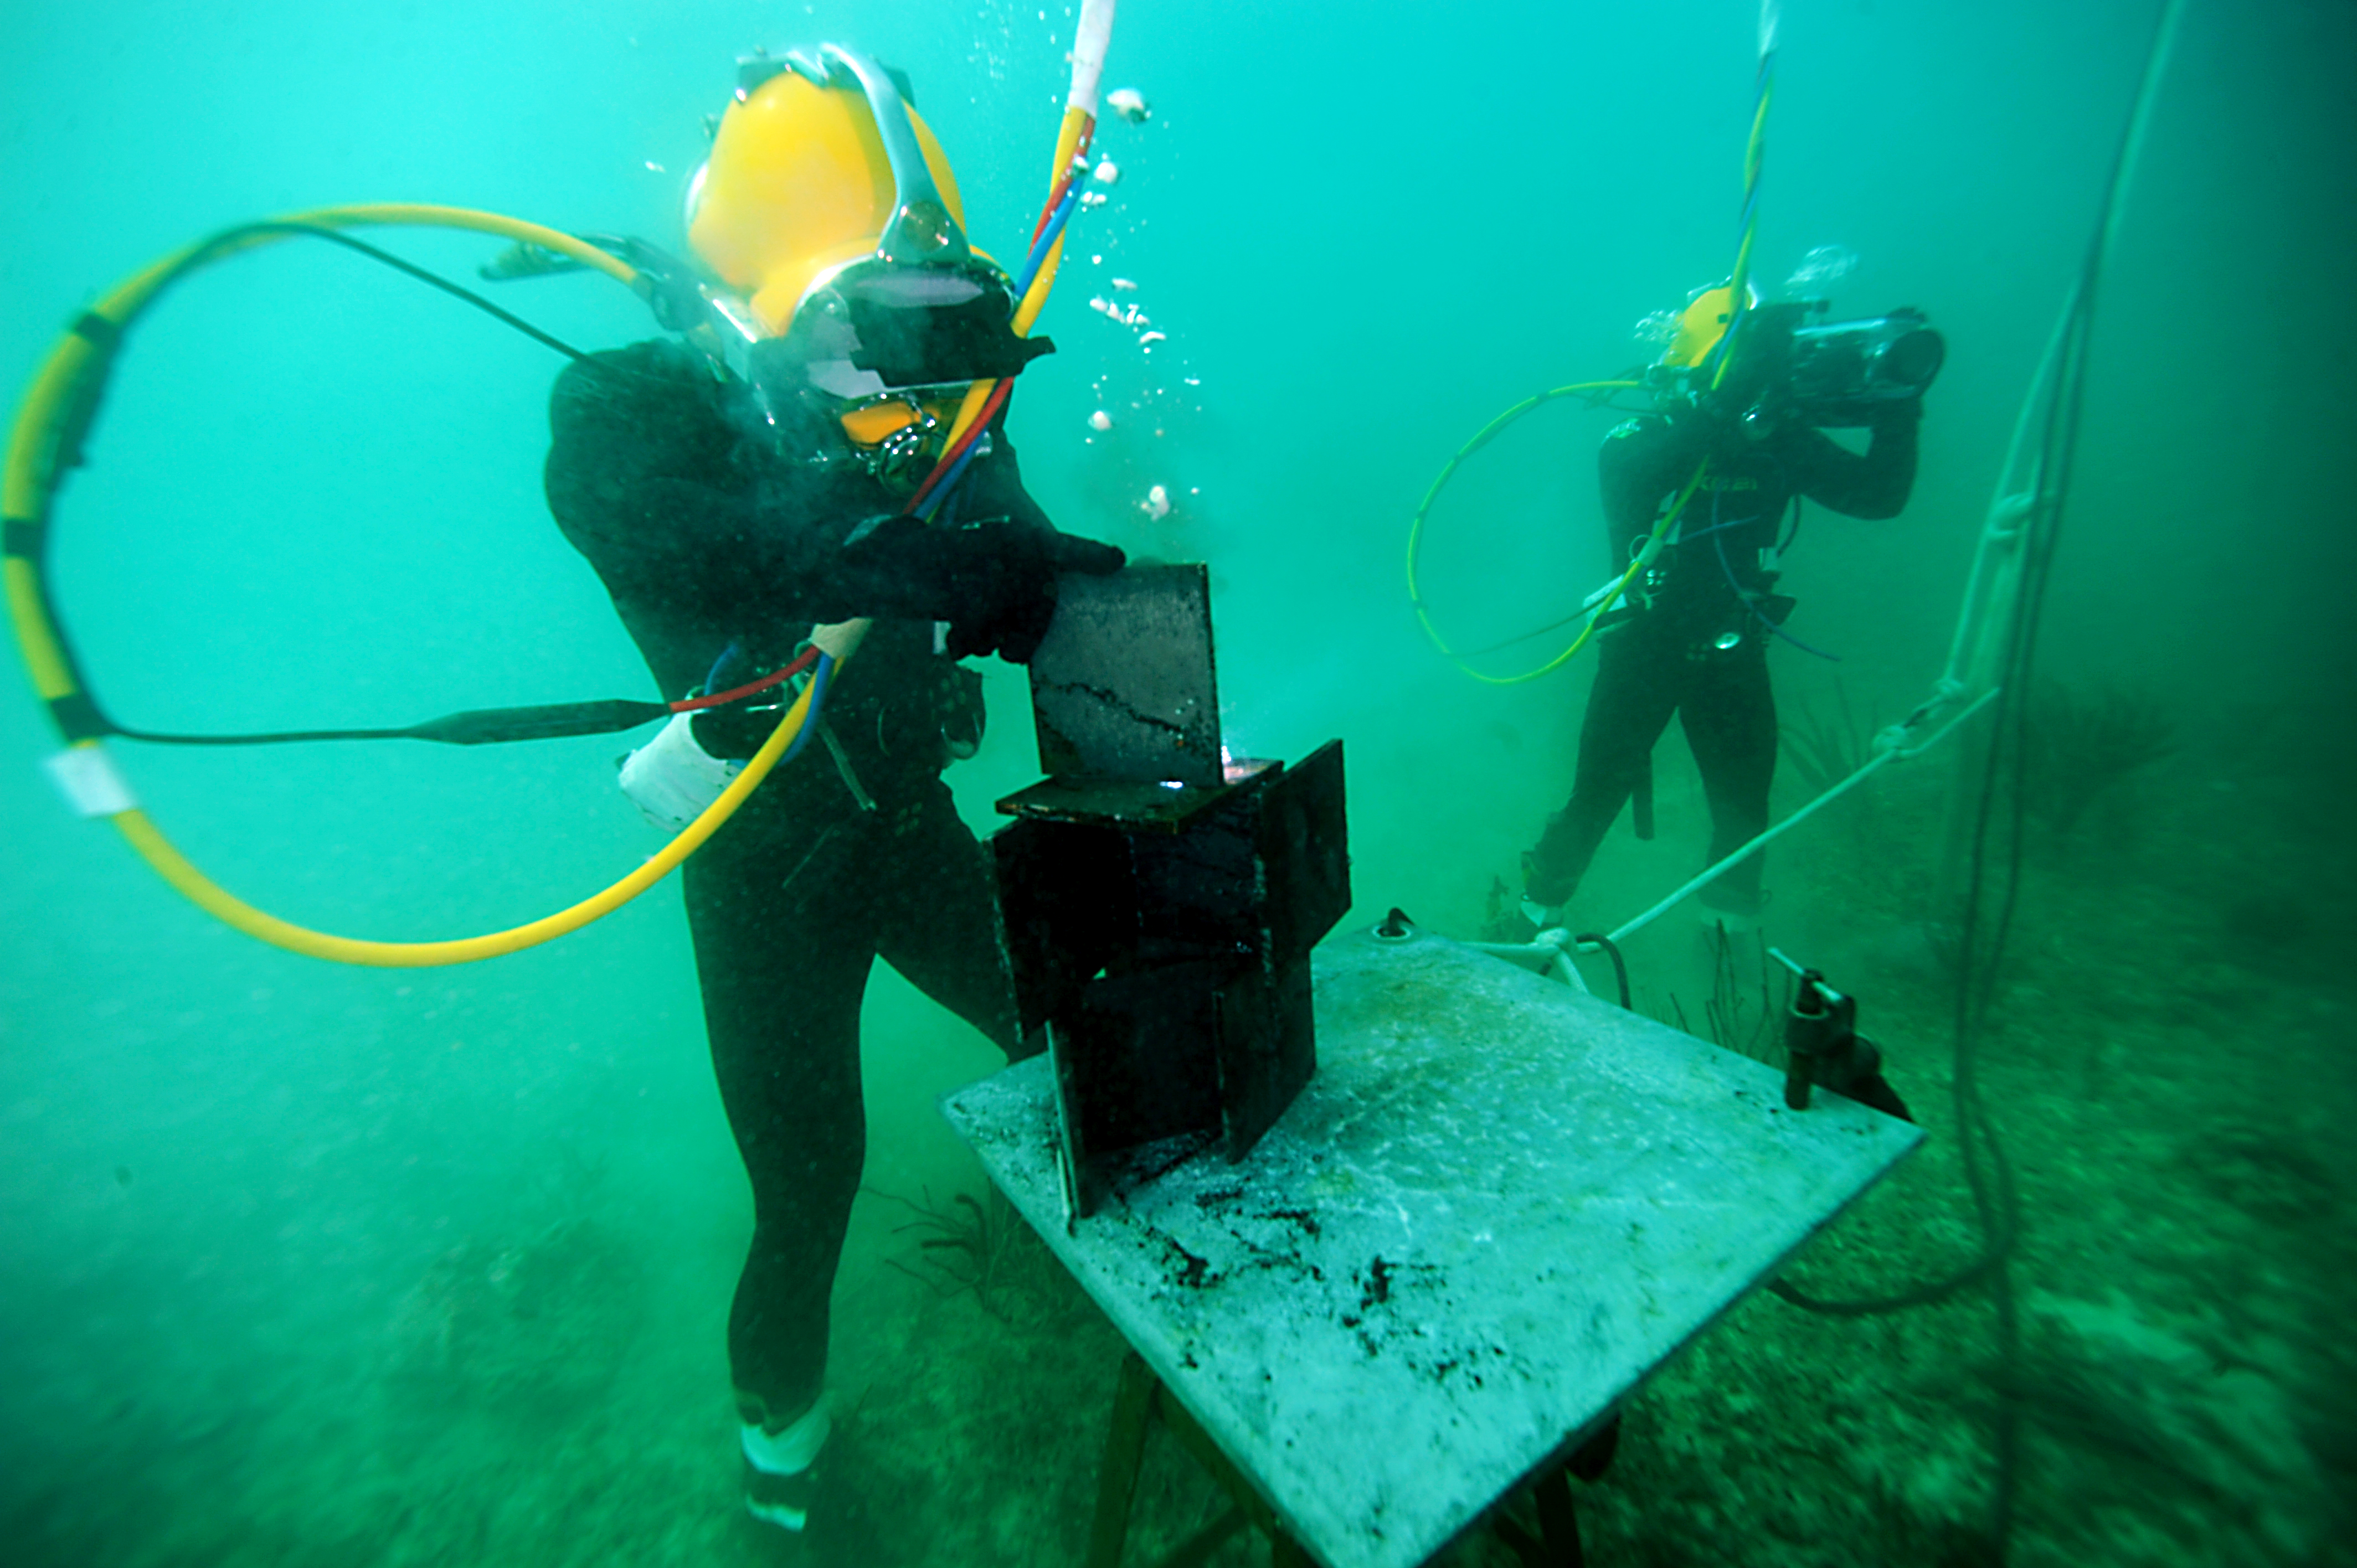 Navy diver as uses an underwater welding torch